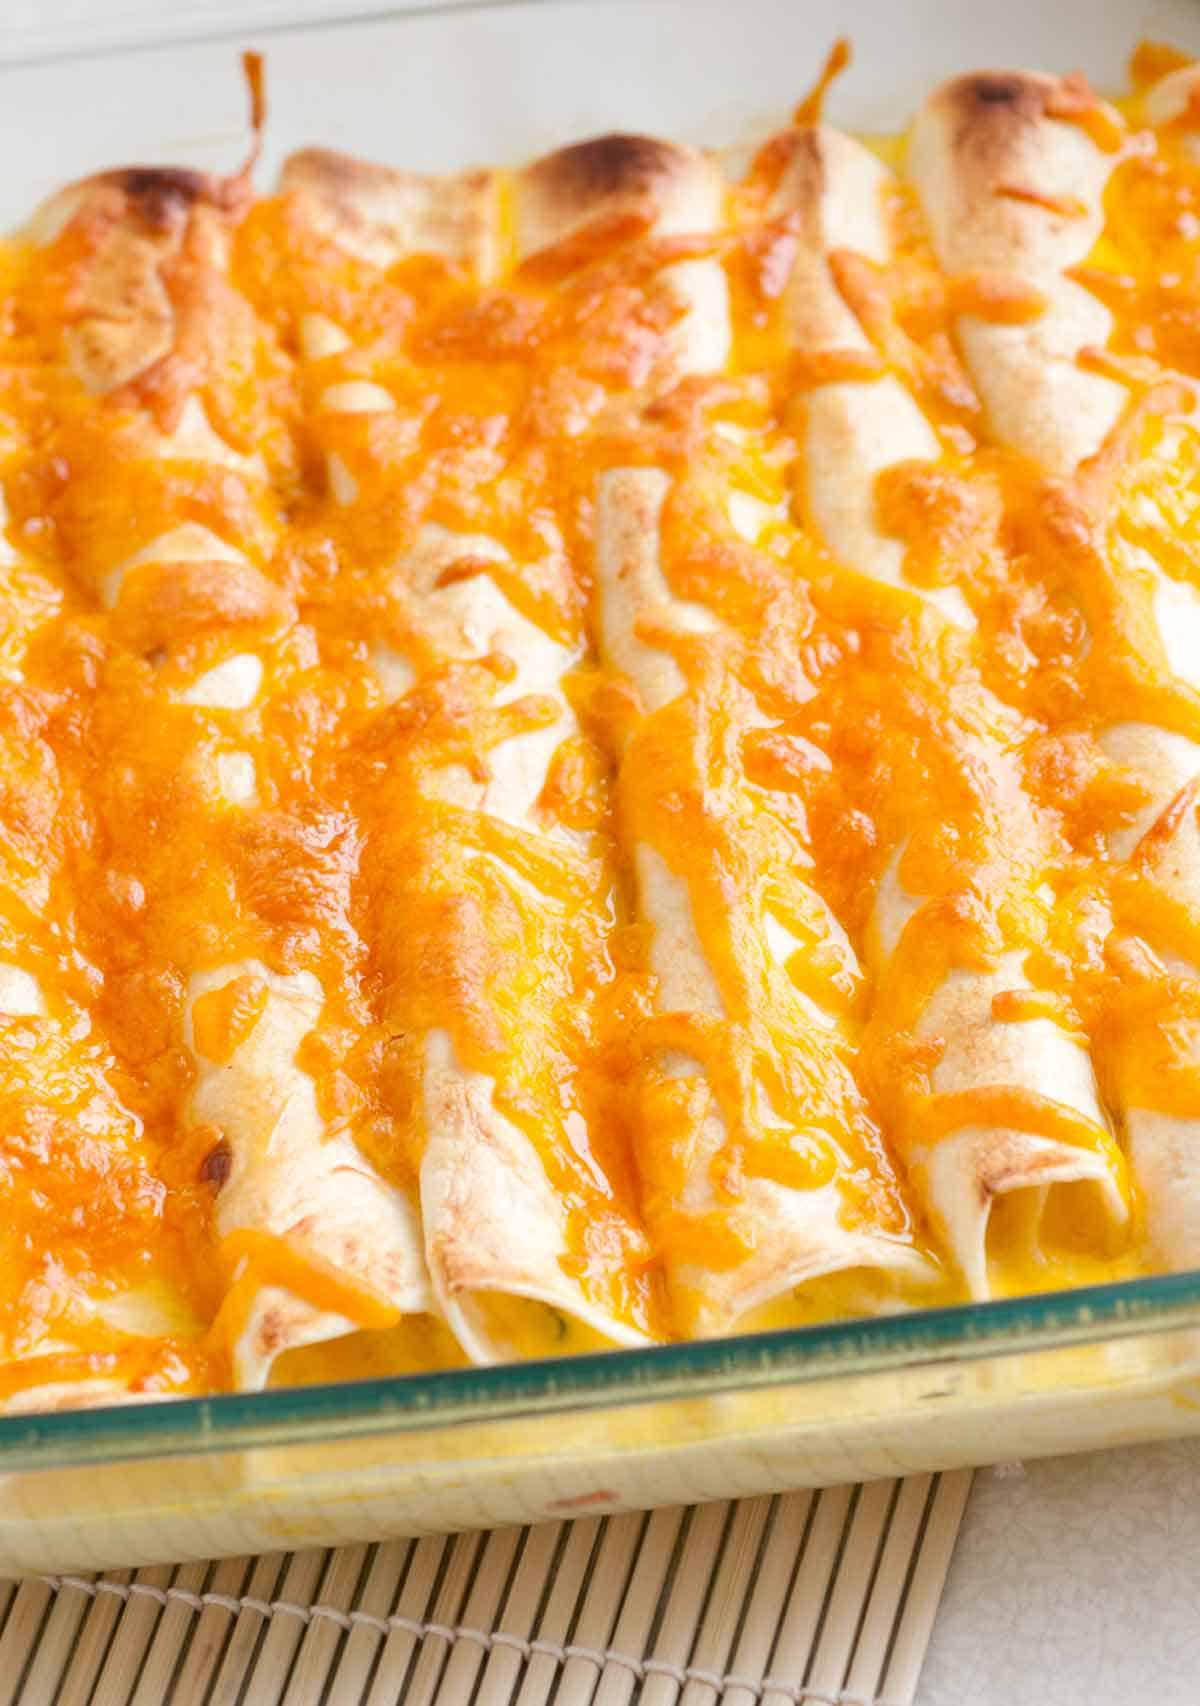 How to Make Breakfast Enchiladas